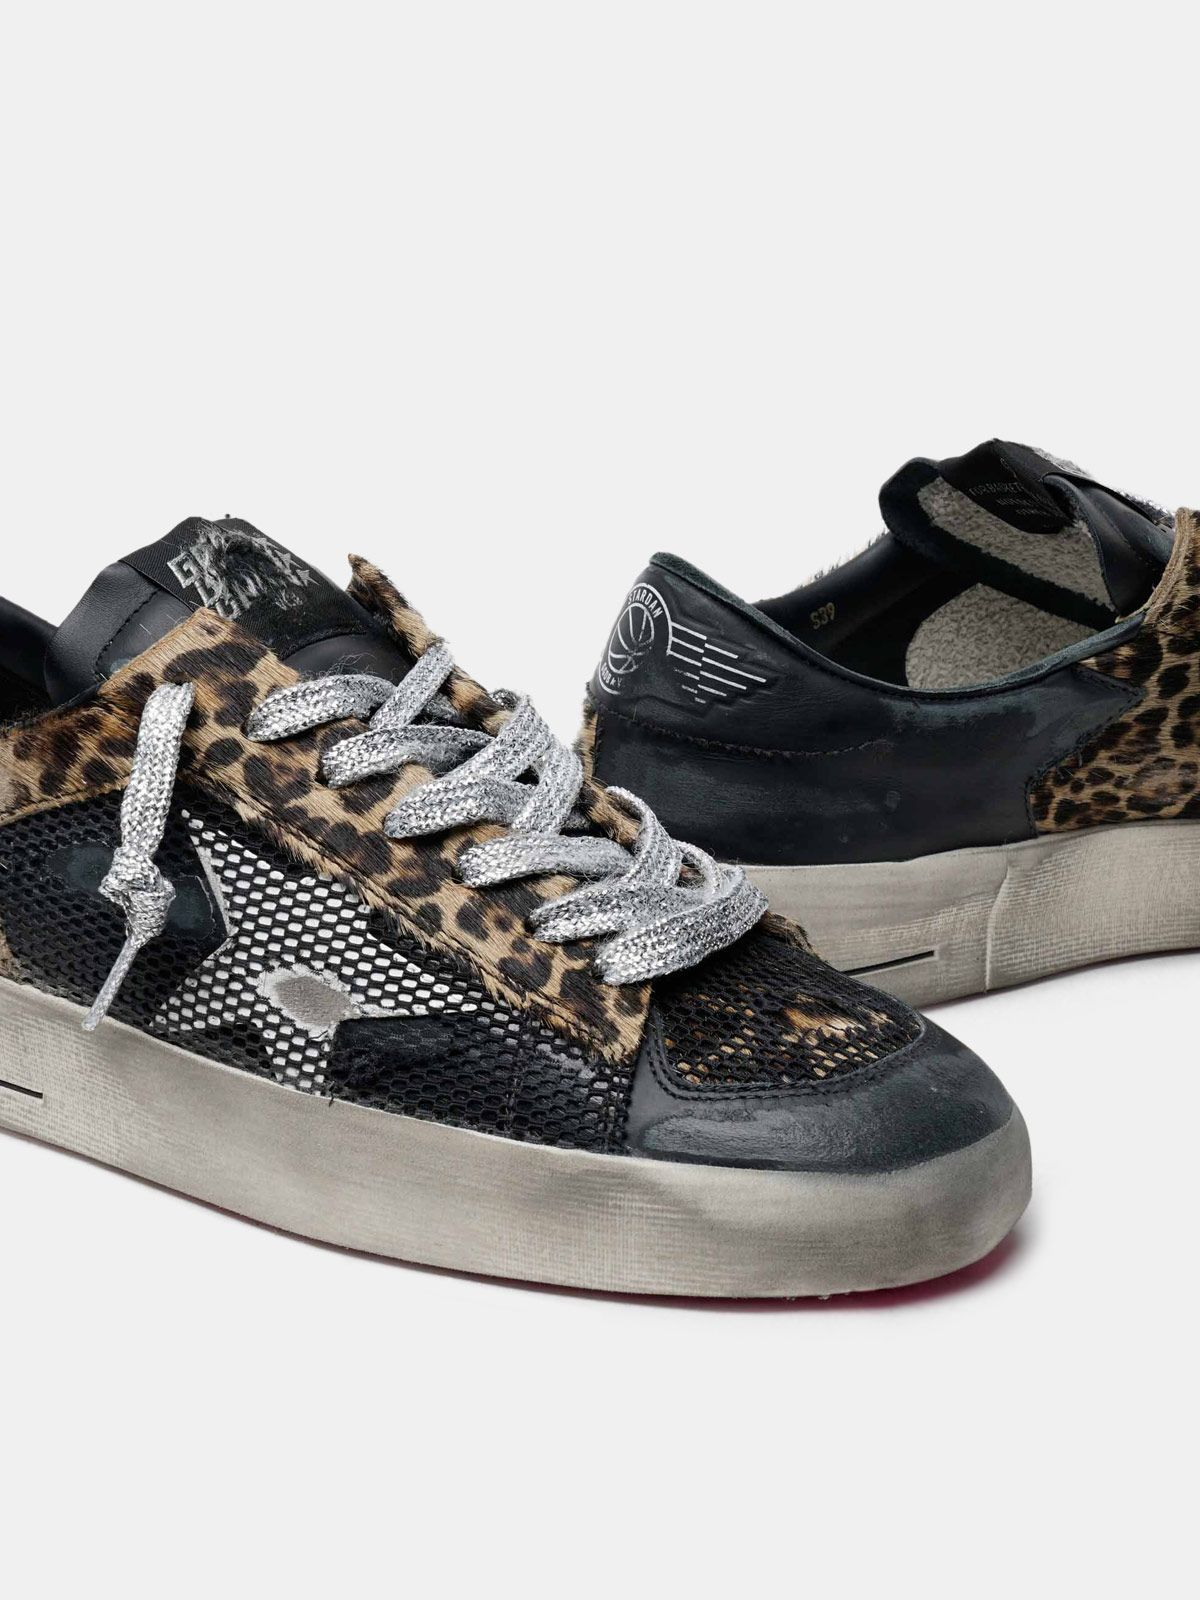 Golden Goose - Leopard-print Stardan sneakers with fuchsia sole in